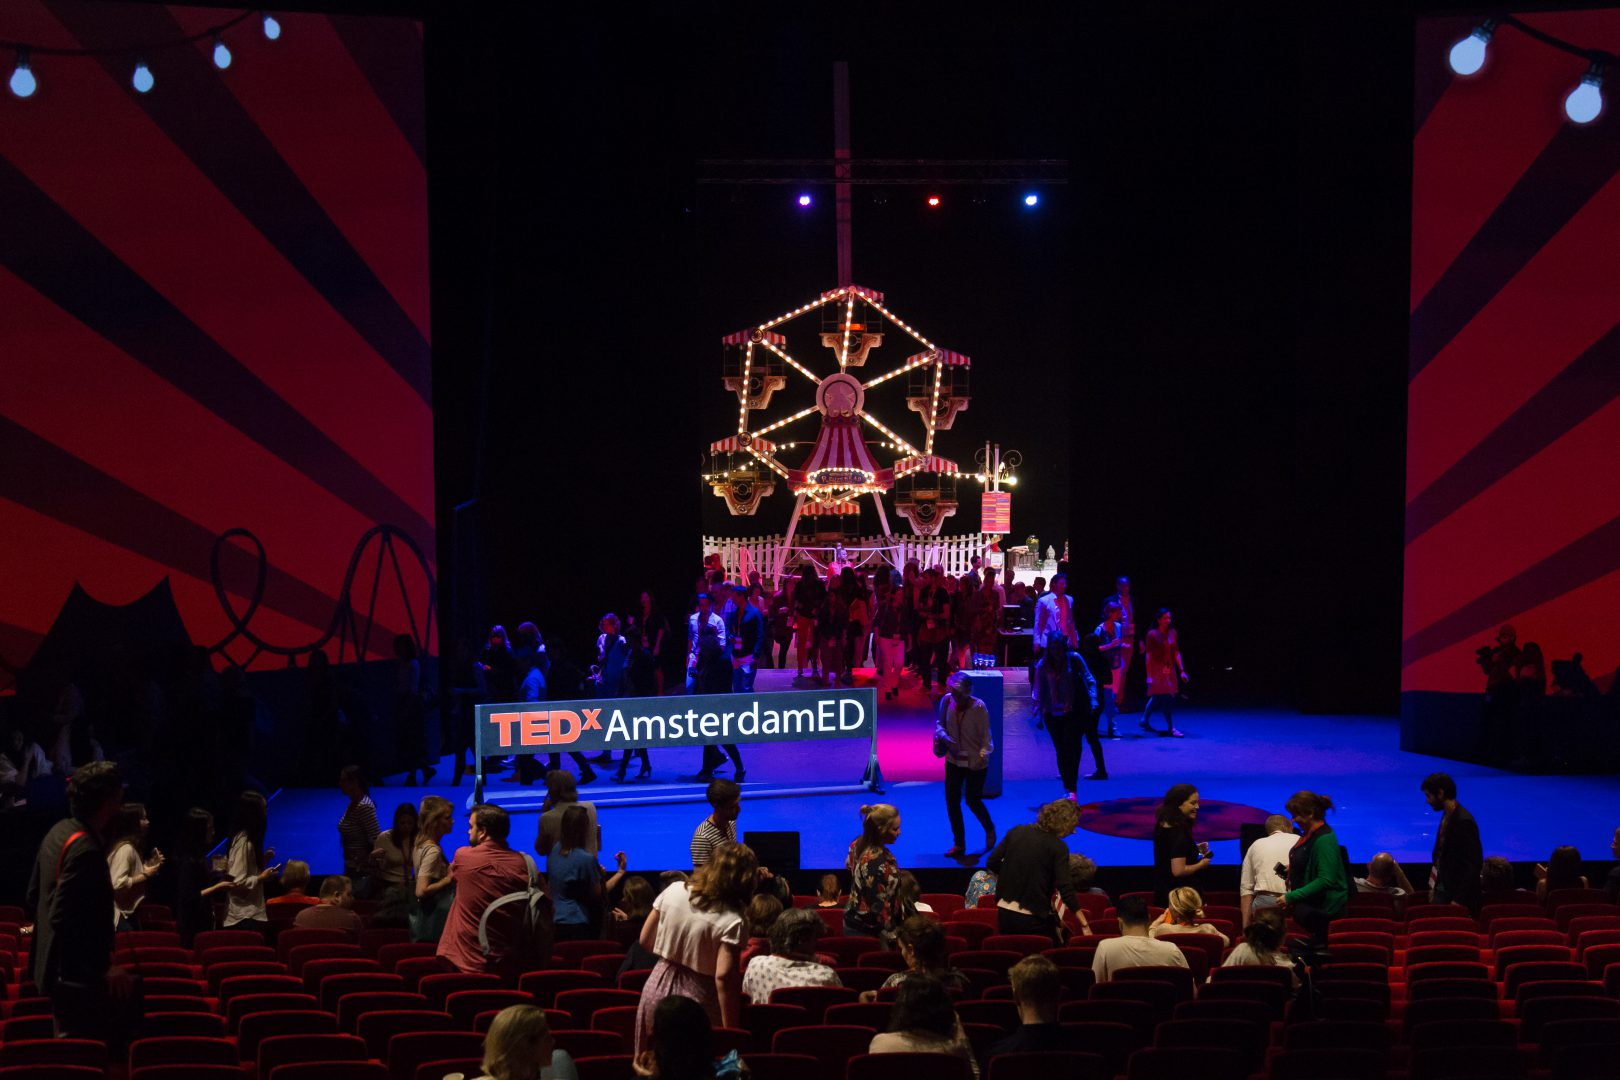 TEDxAmsterdamED 2017 Aftermovie